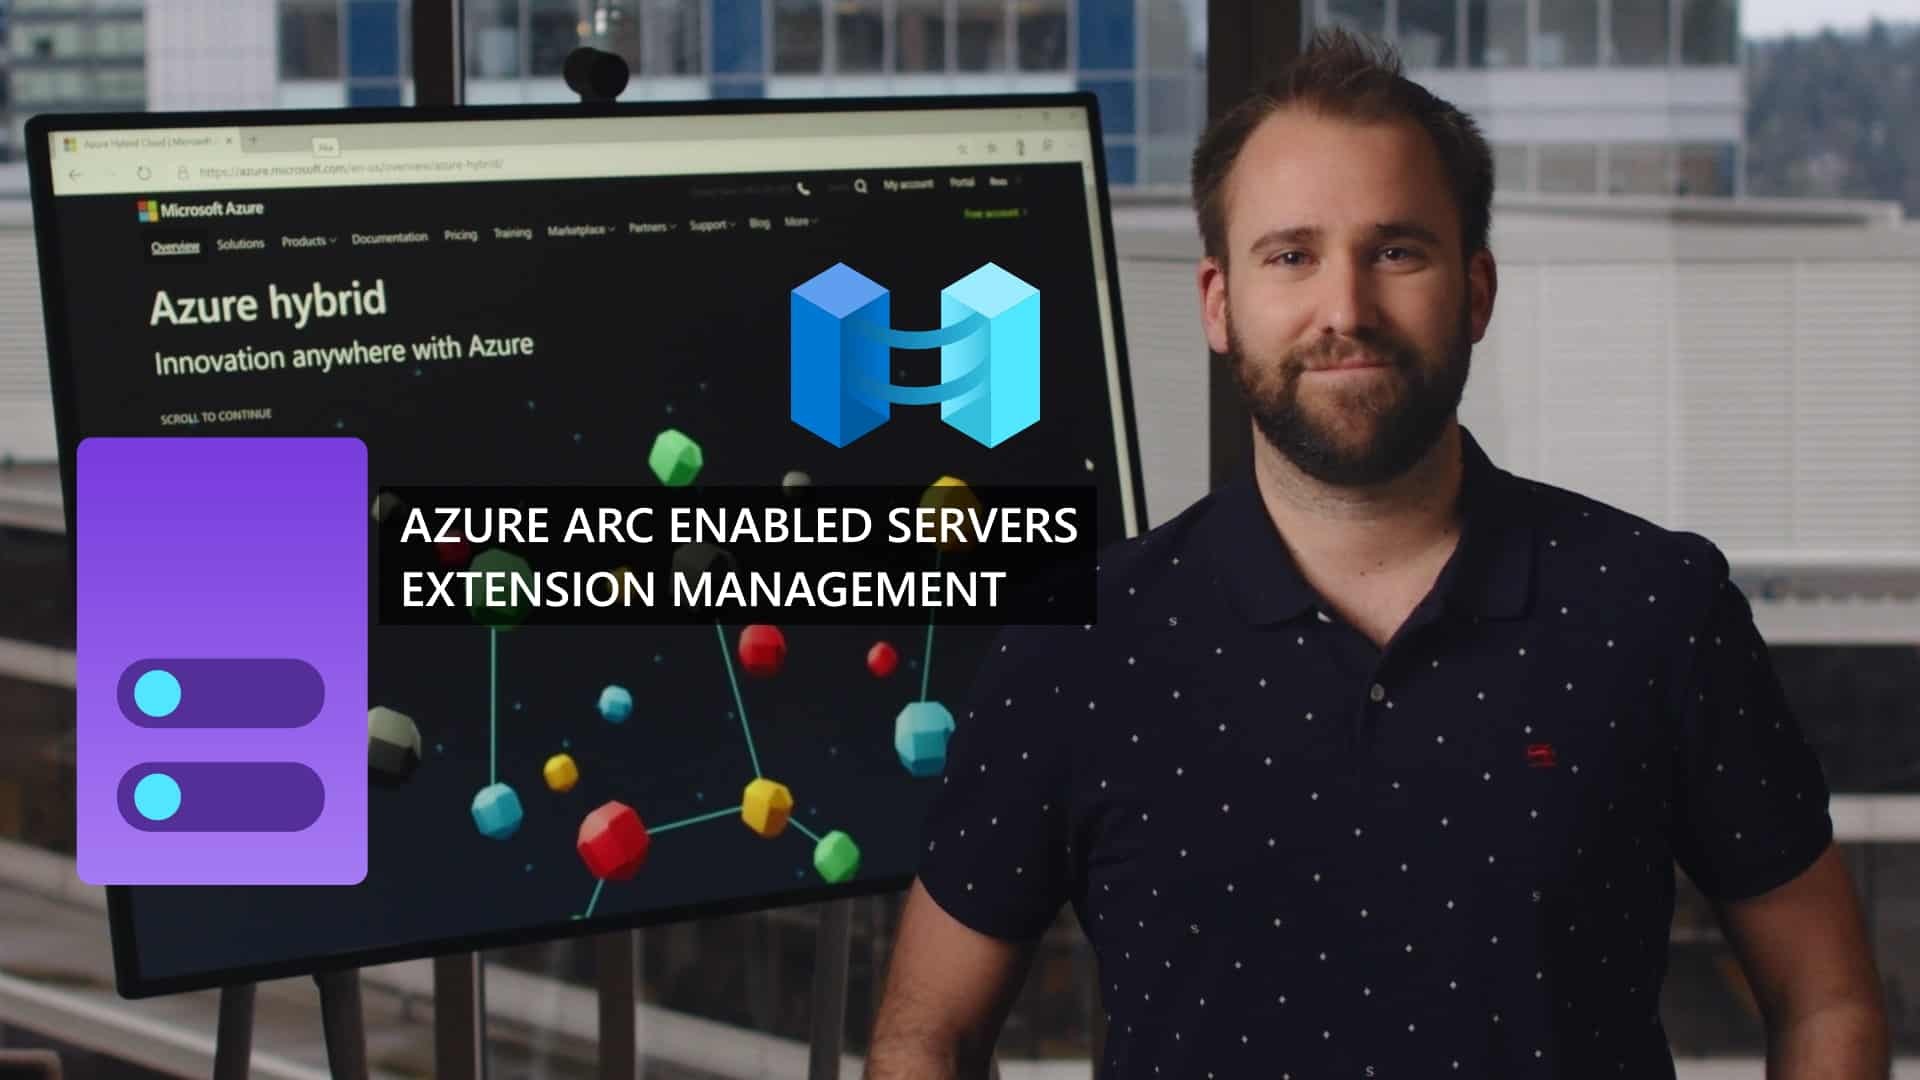 Azure Arc Enabled Servers Extension Management